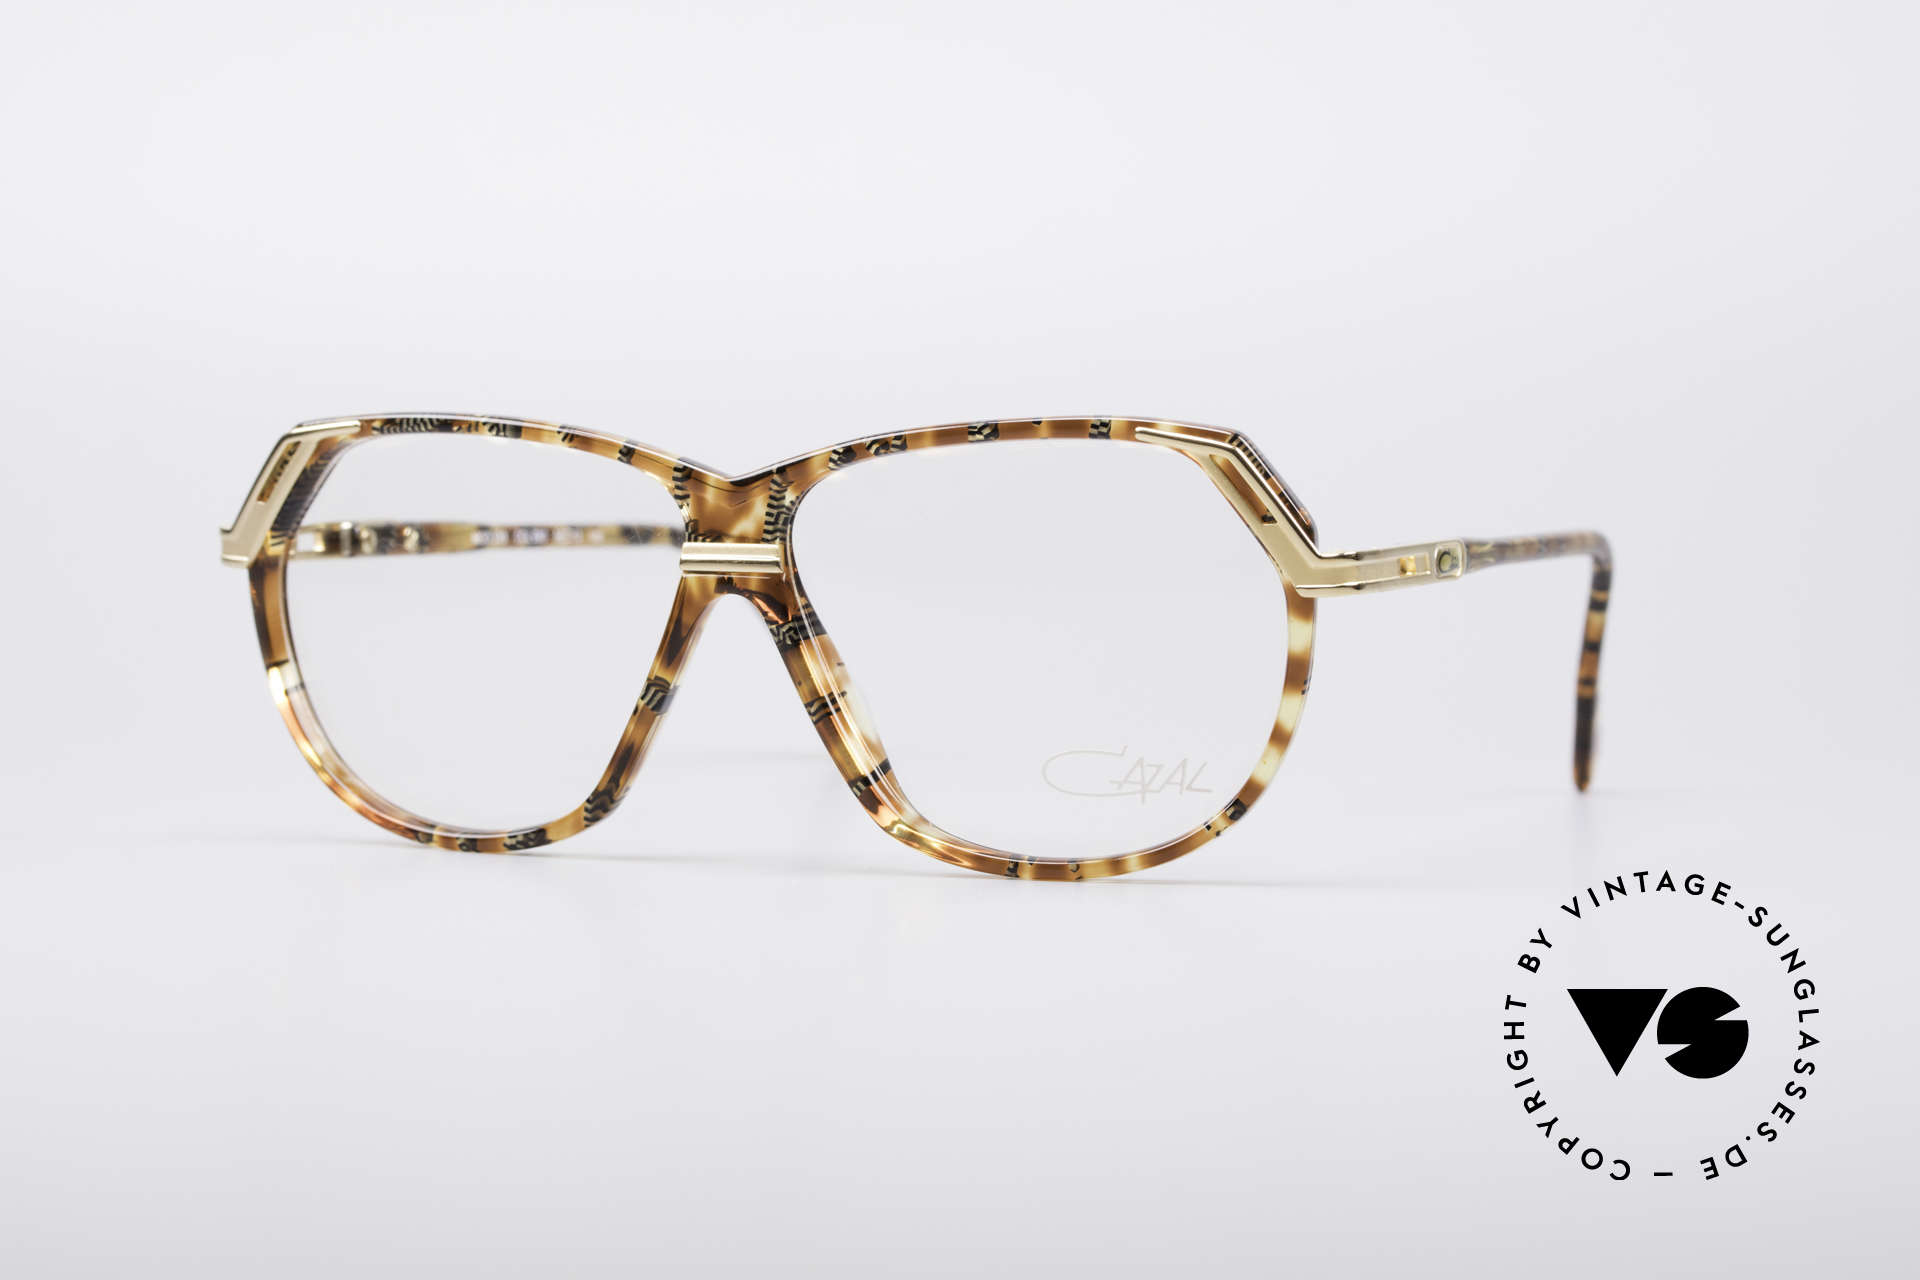 Cazal 339 No Retro 90's Vintage Specs, terrific Cazal vintage eyeglasses from 1990, Made for Women